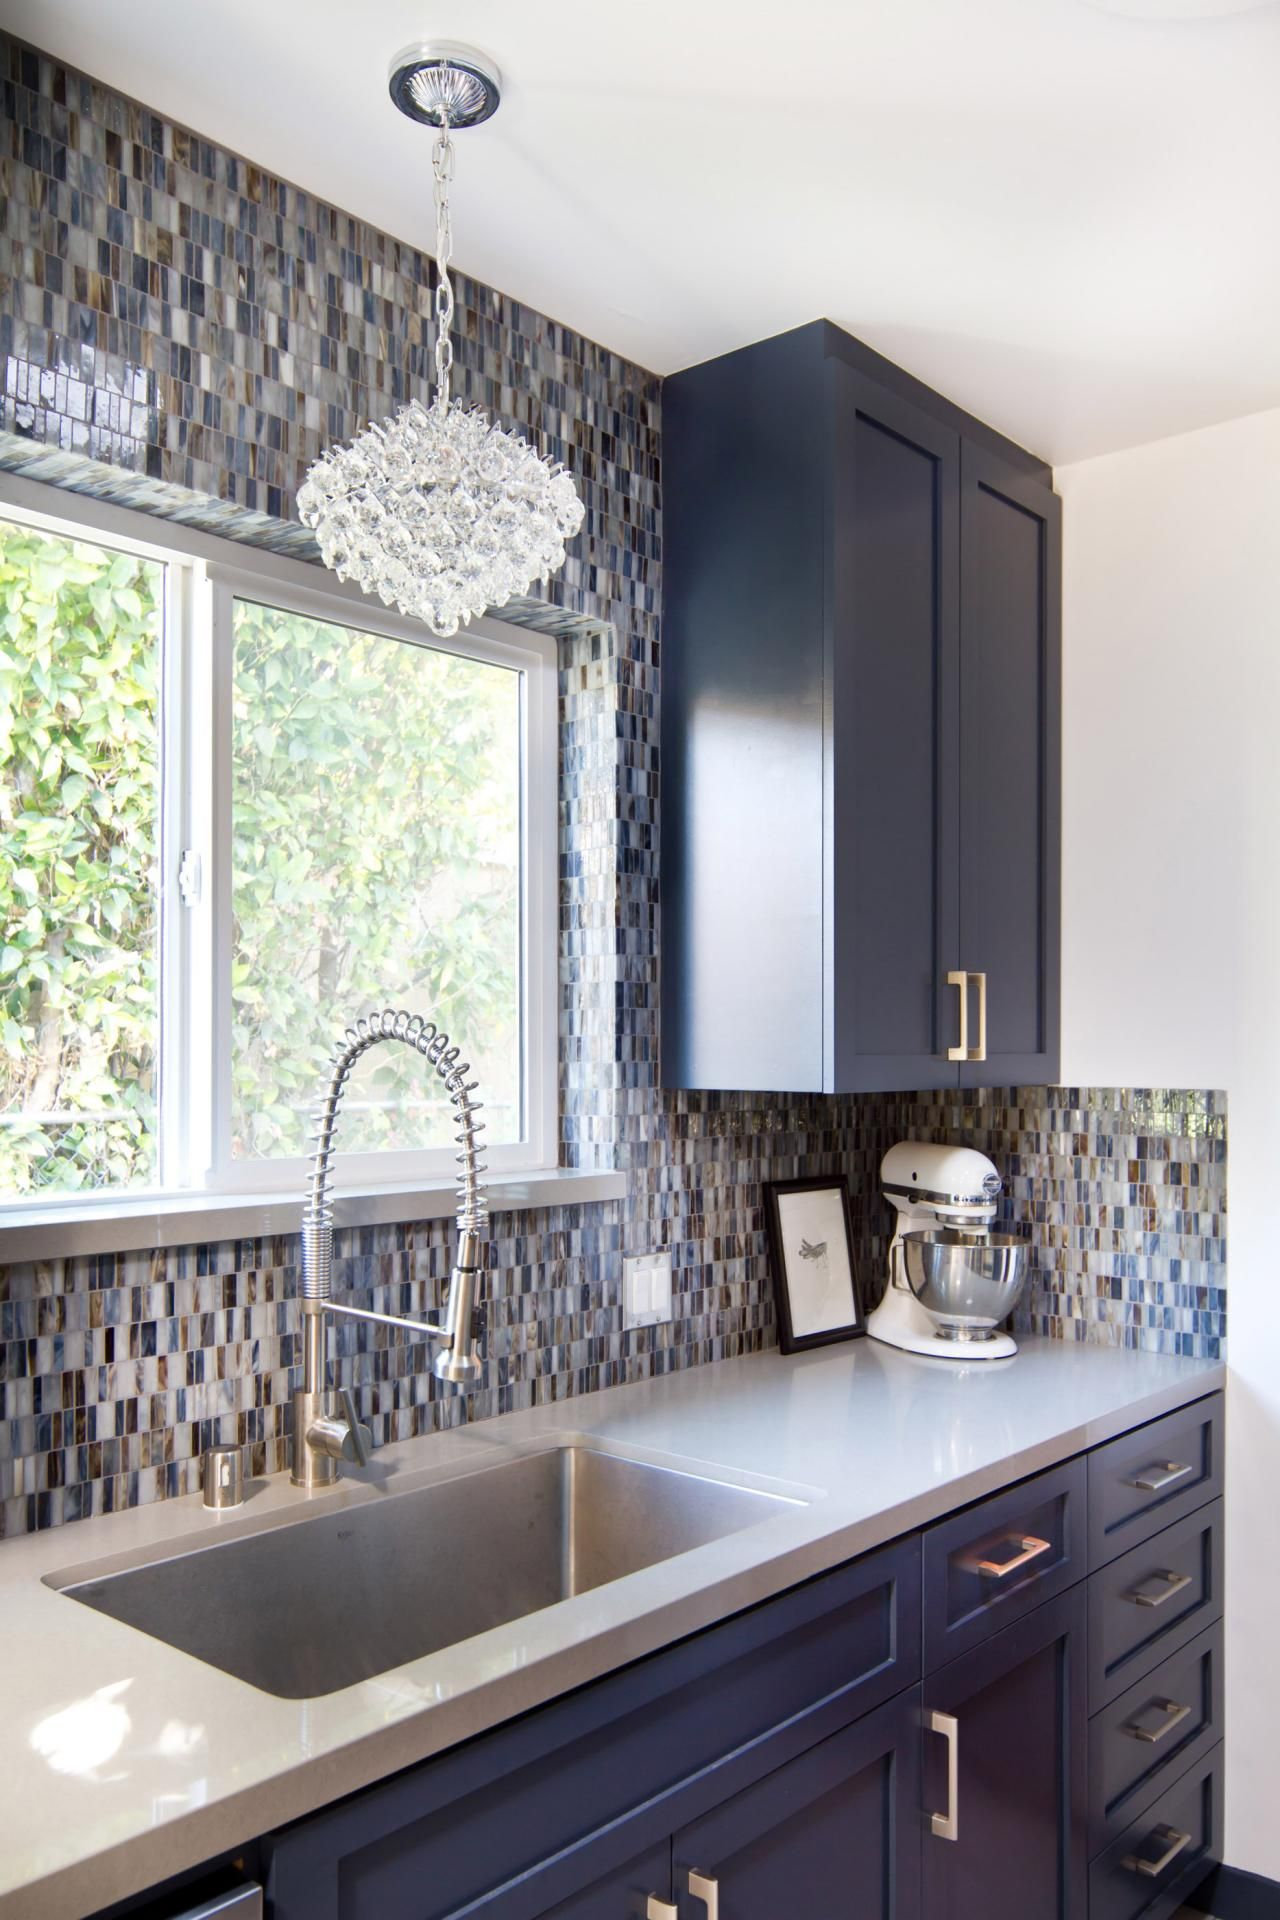 A Multi Colored Glass Tile Backsplash Adds Cool Color To This Mid